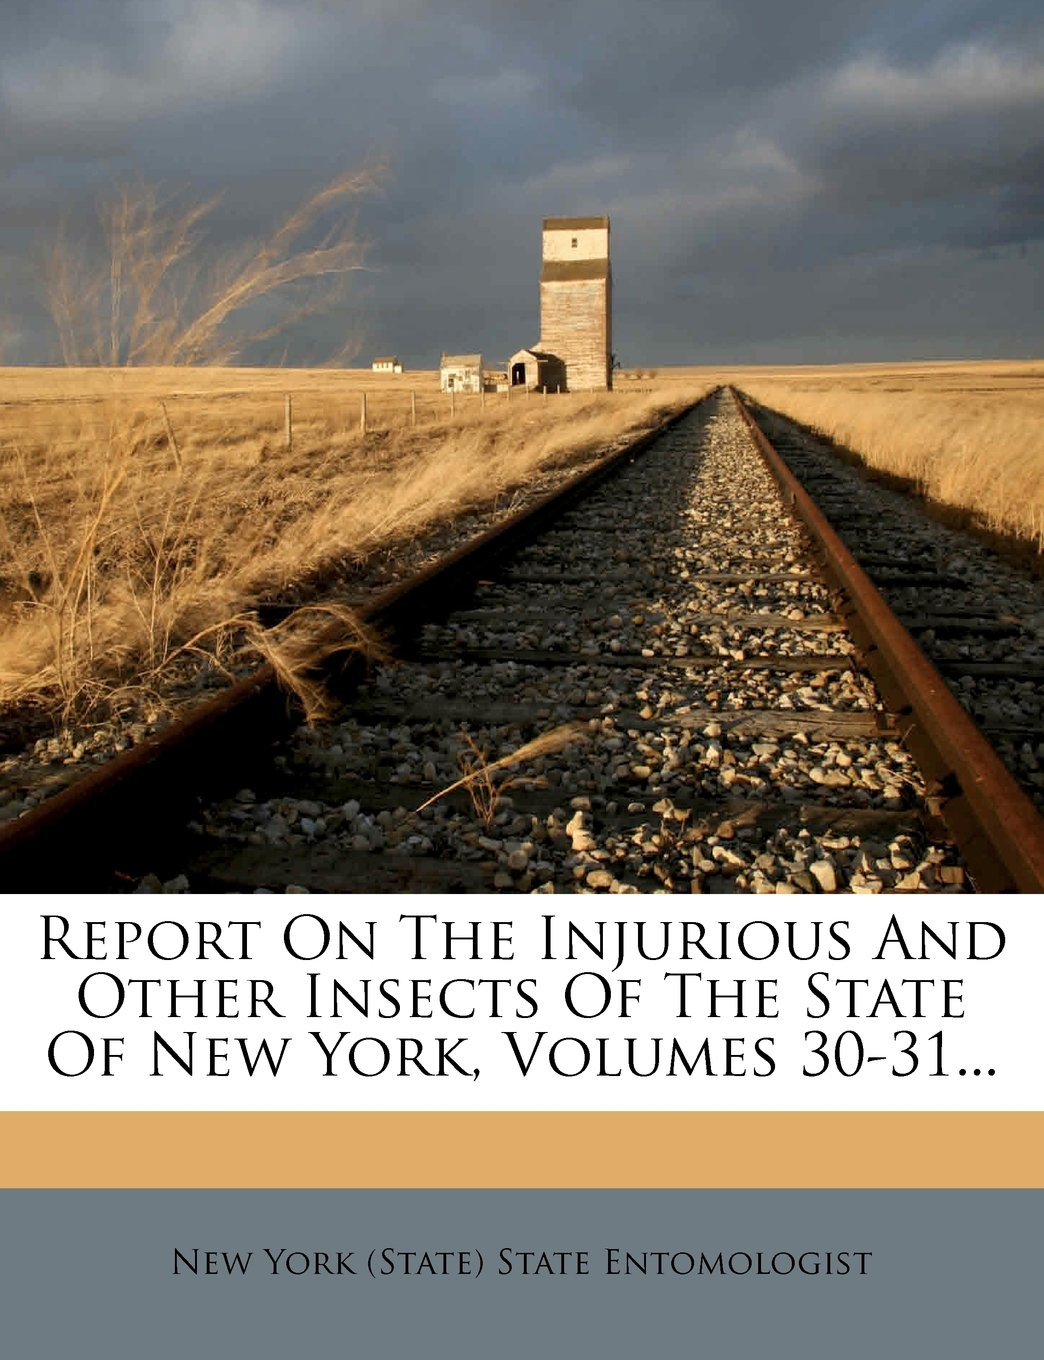 Report On The Injurious And Other Insects Of The State Of New York, Volumes 30-31... ebook